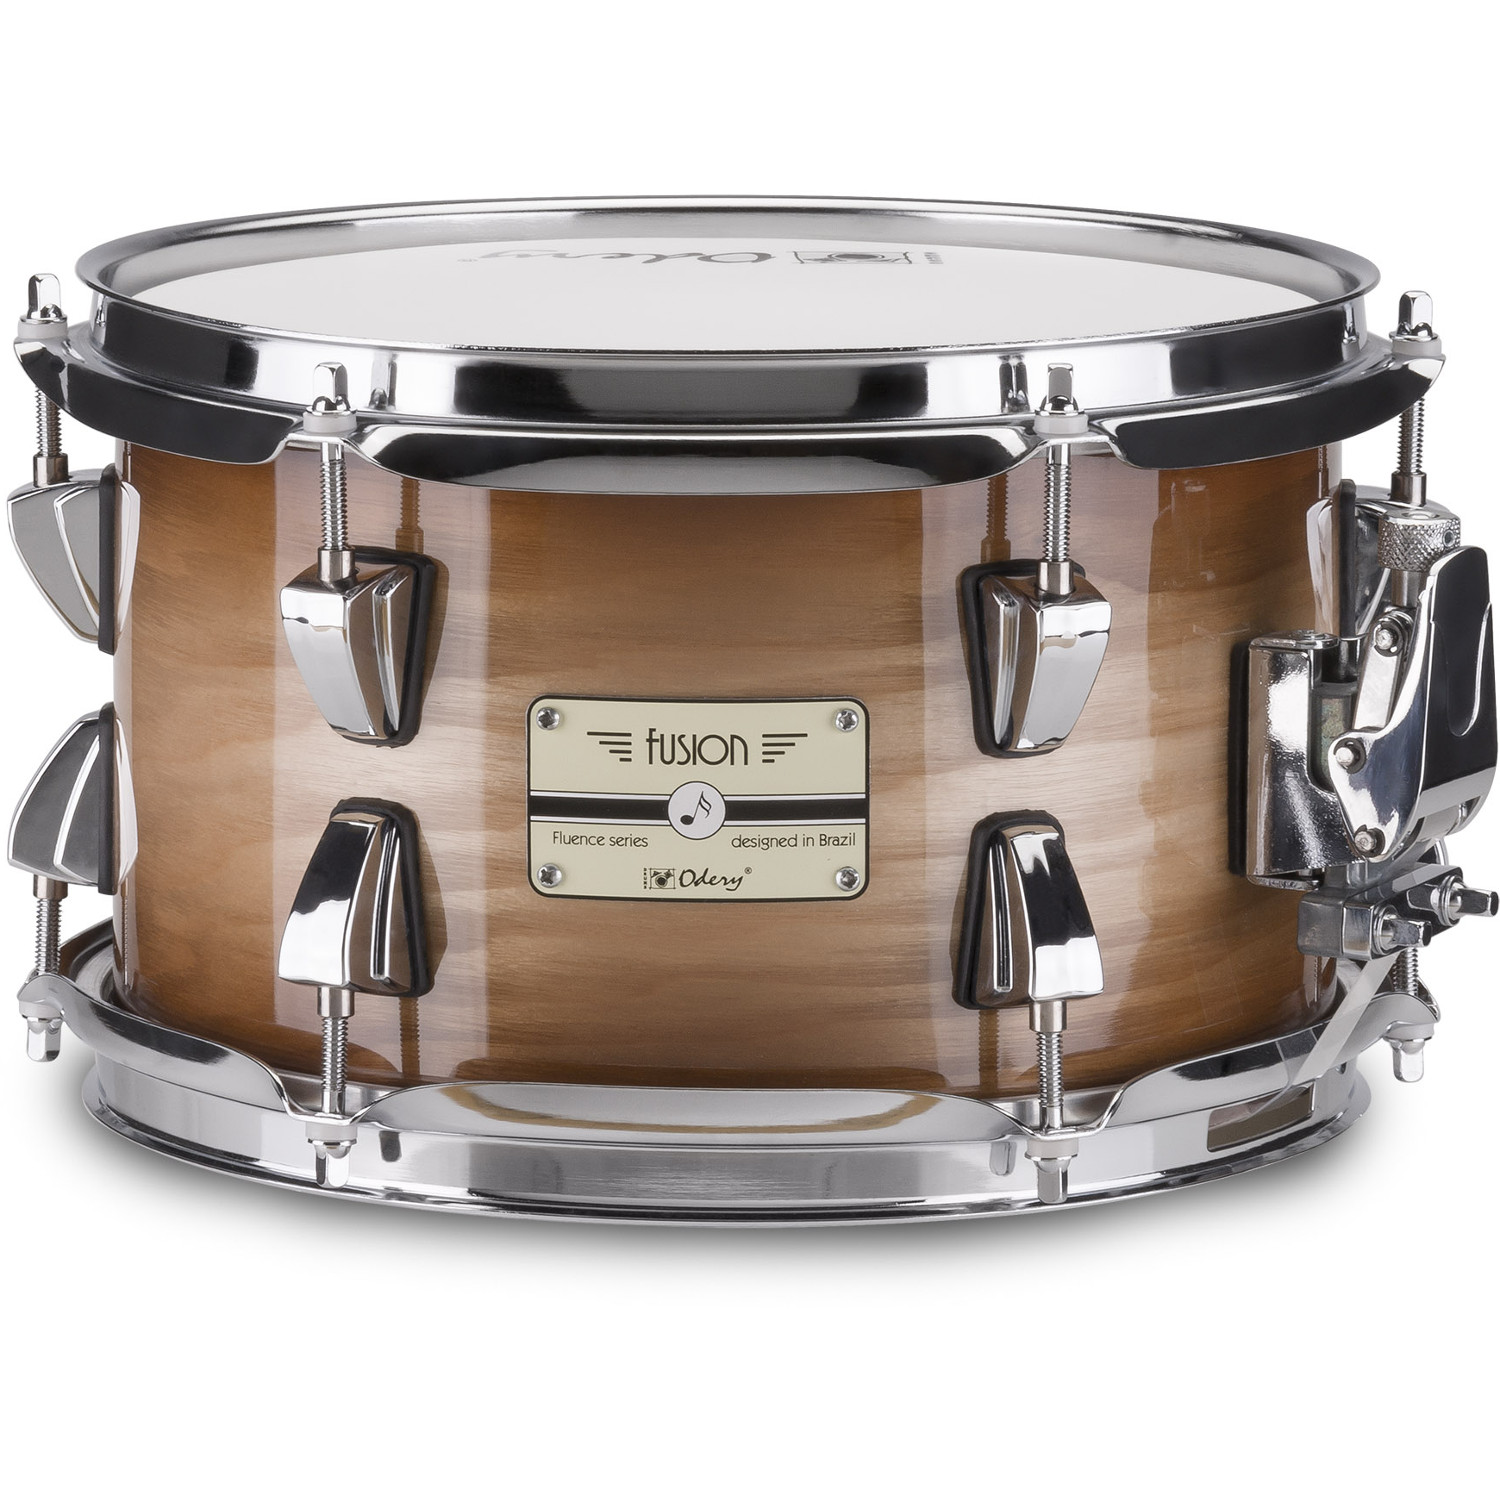 Odery Fluence 10 x 6 inch snare drum, Magma Vintage